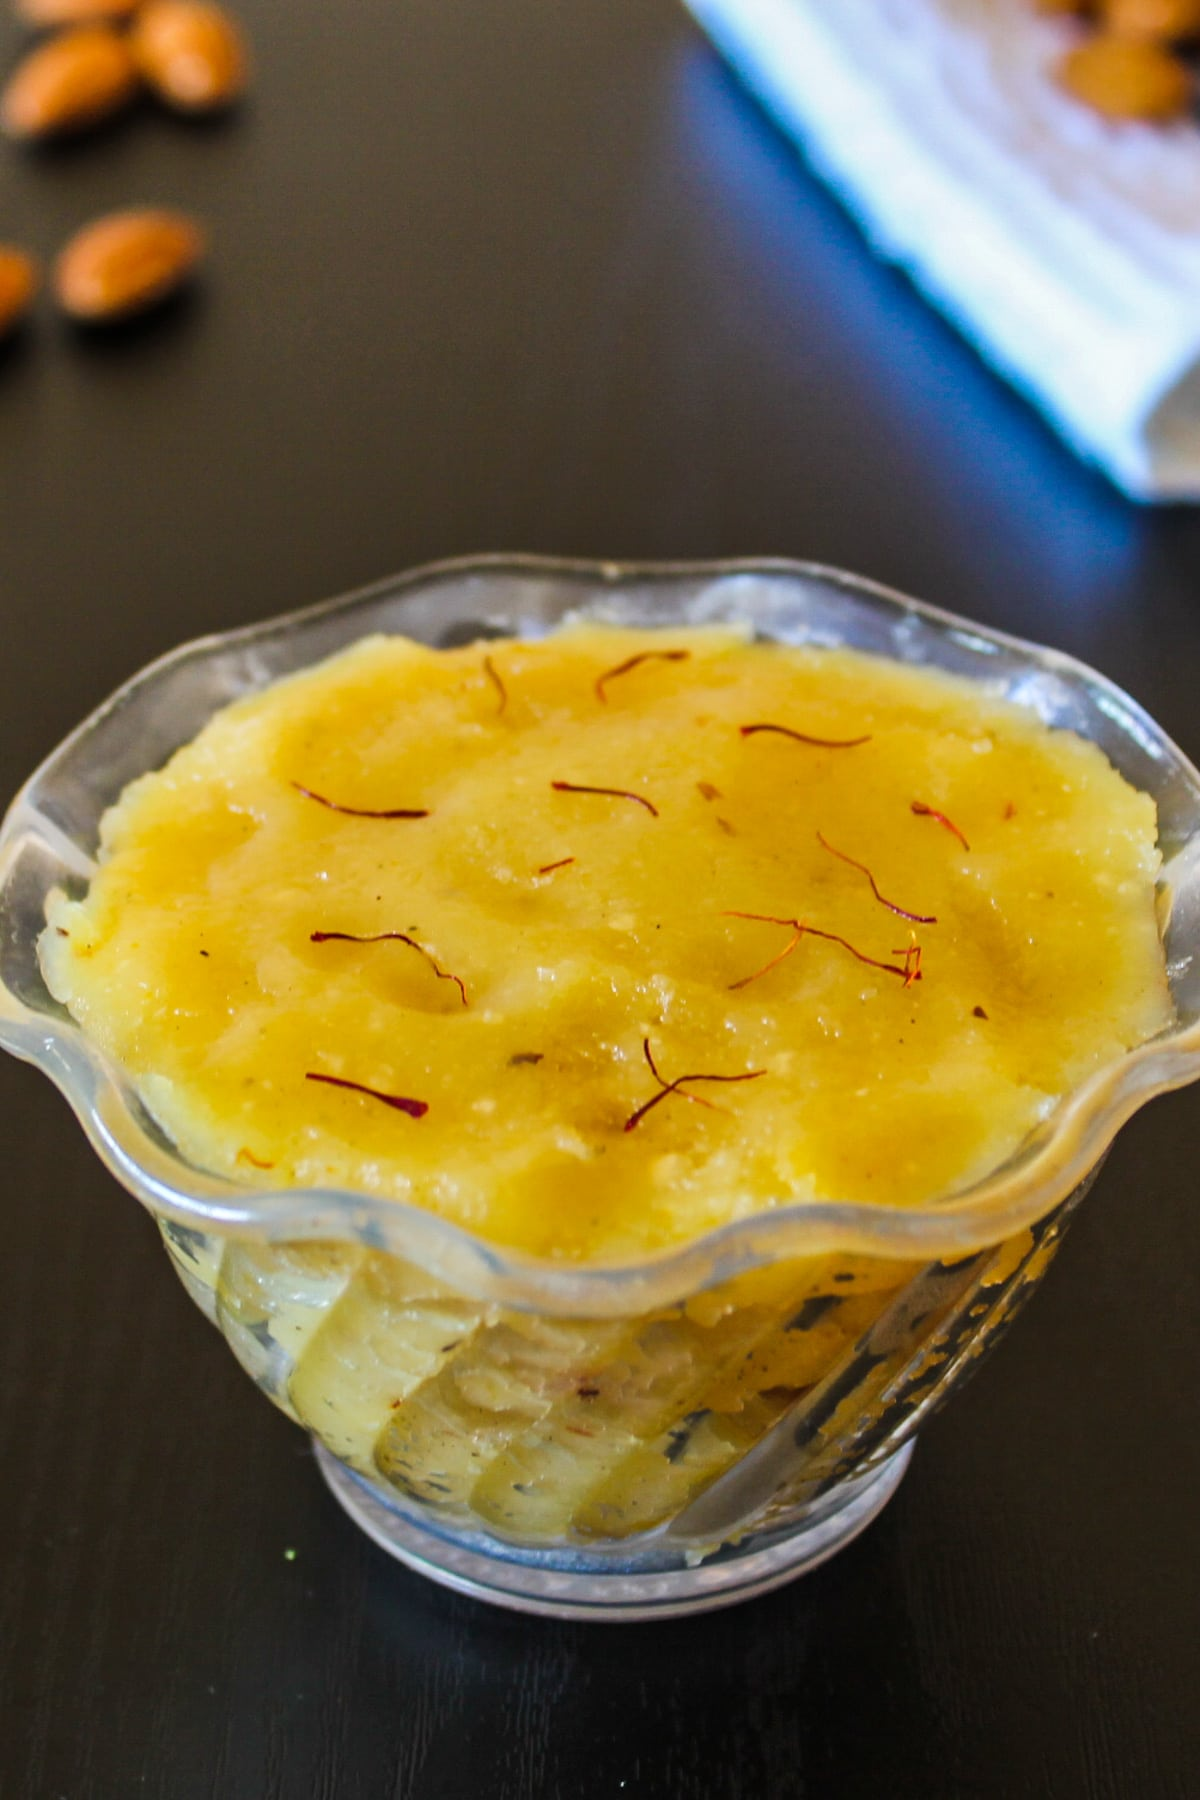 Badam halwa in a bowl garnished with saffron, few whole amonds are in the background